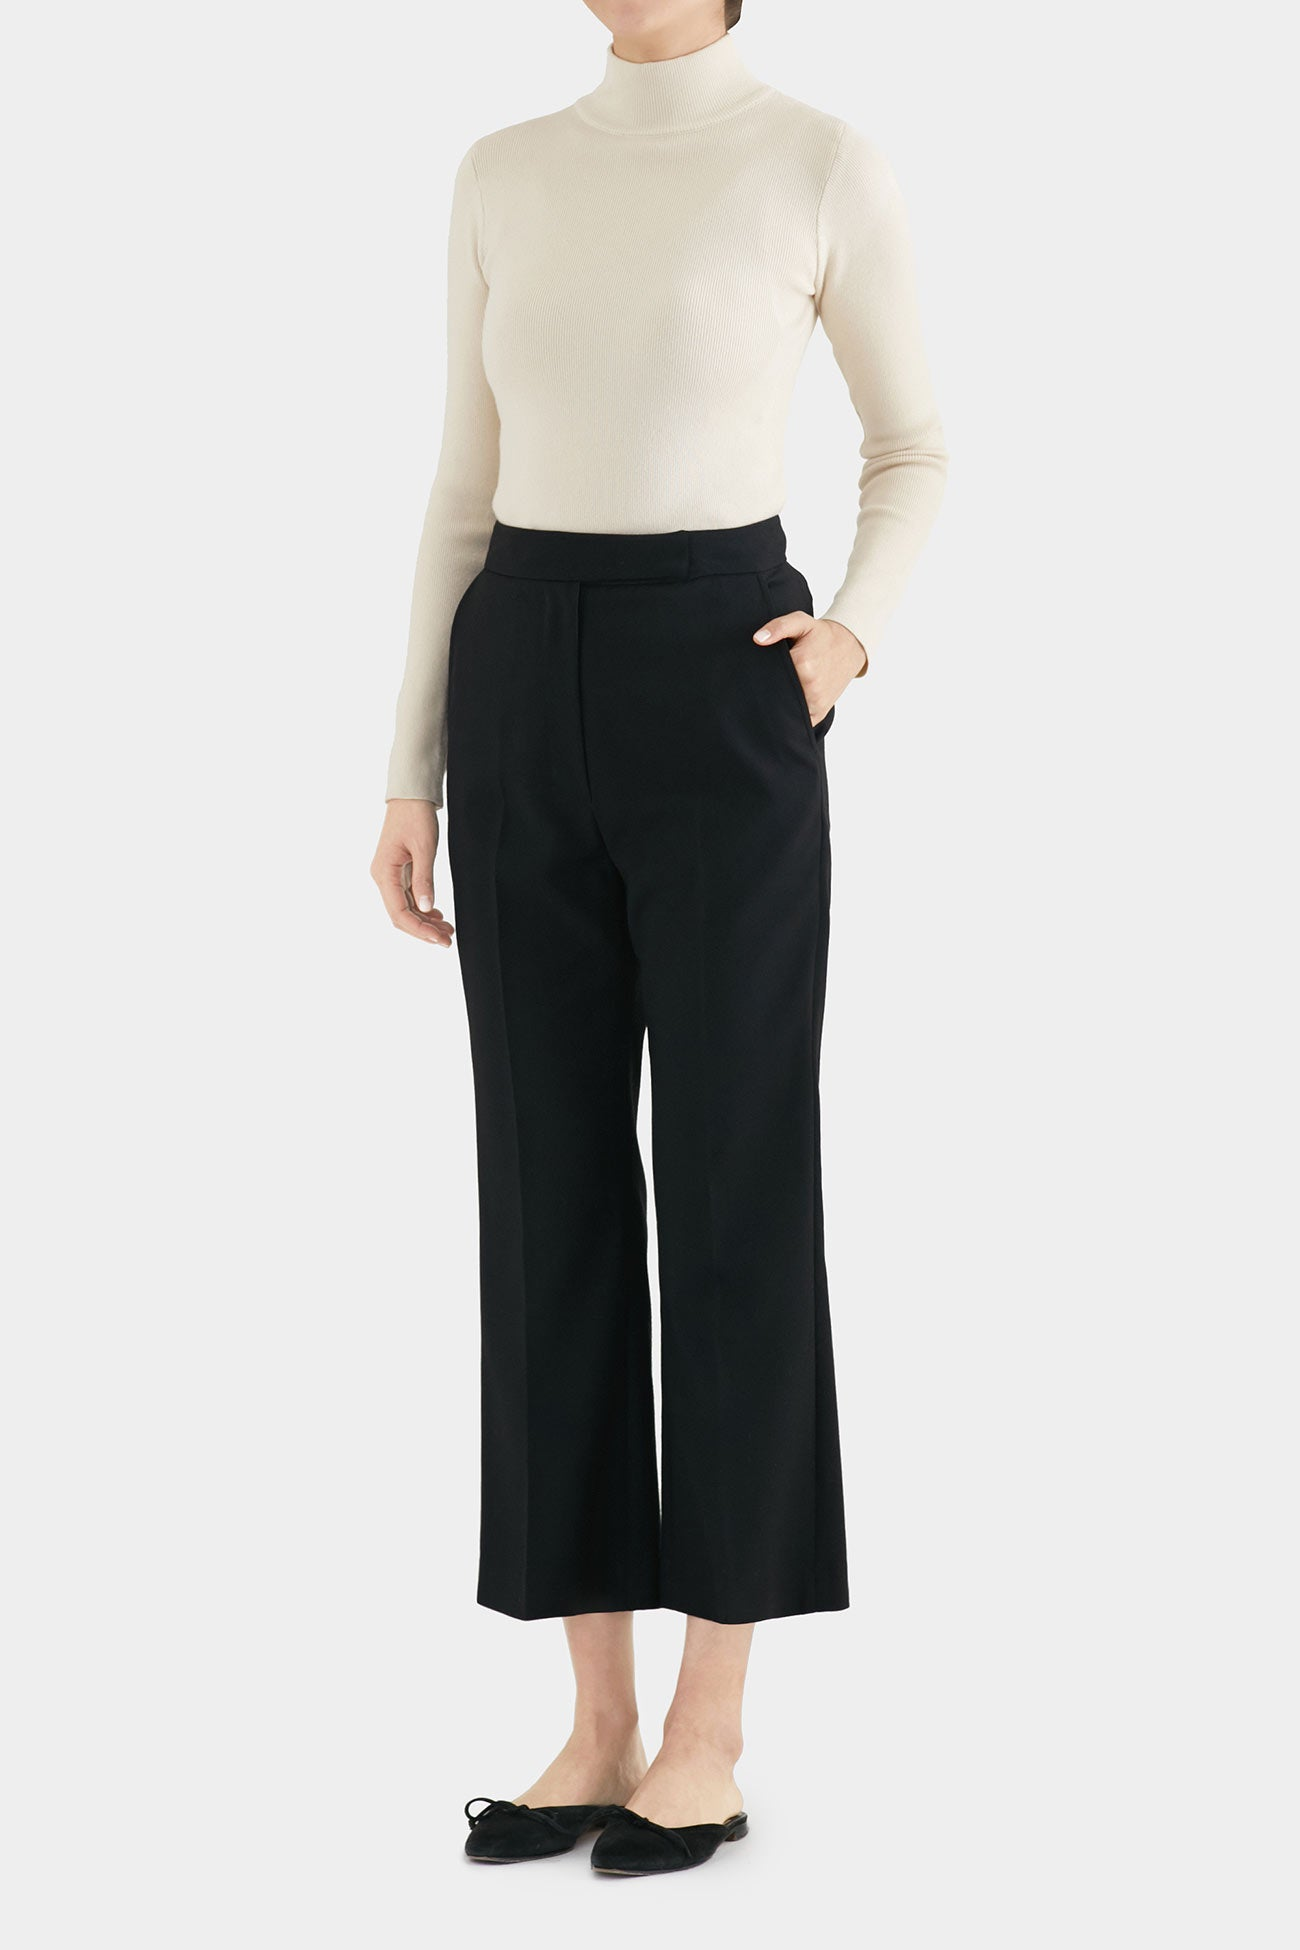 BLACK BONIE TIDY FLARE PANTS